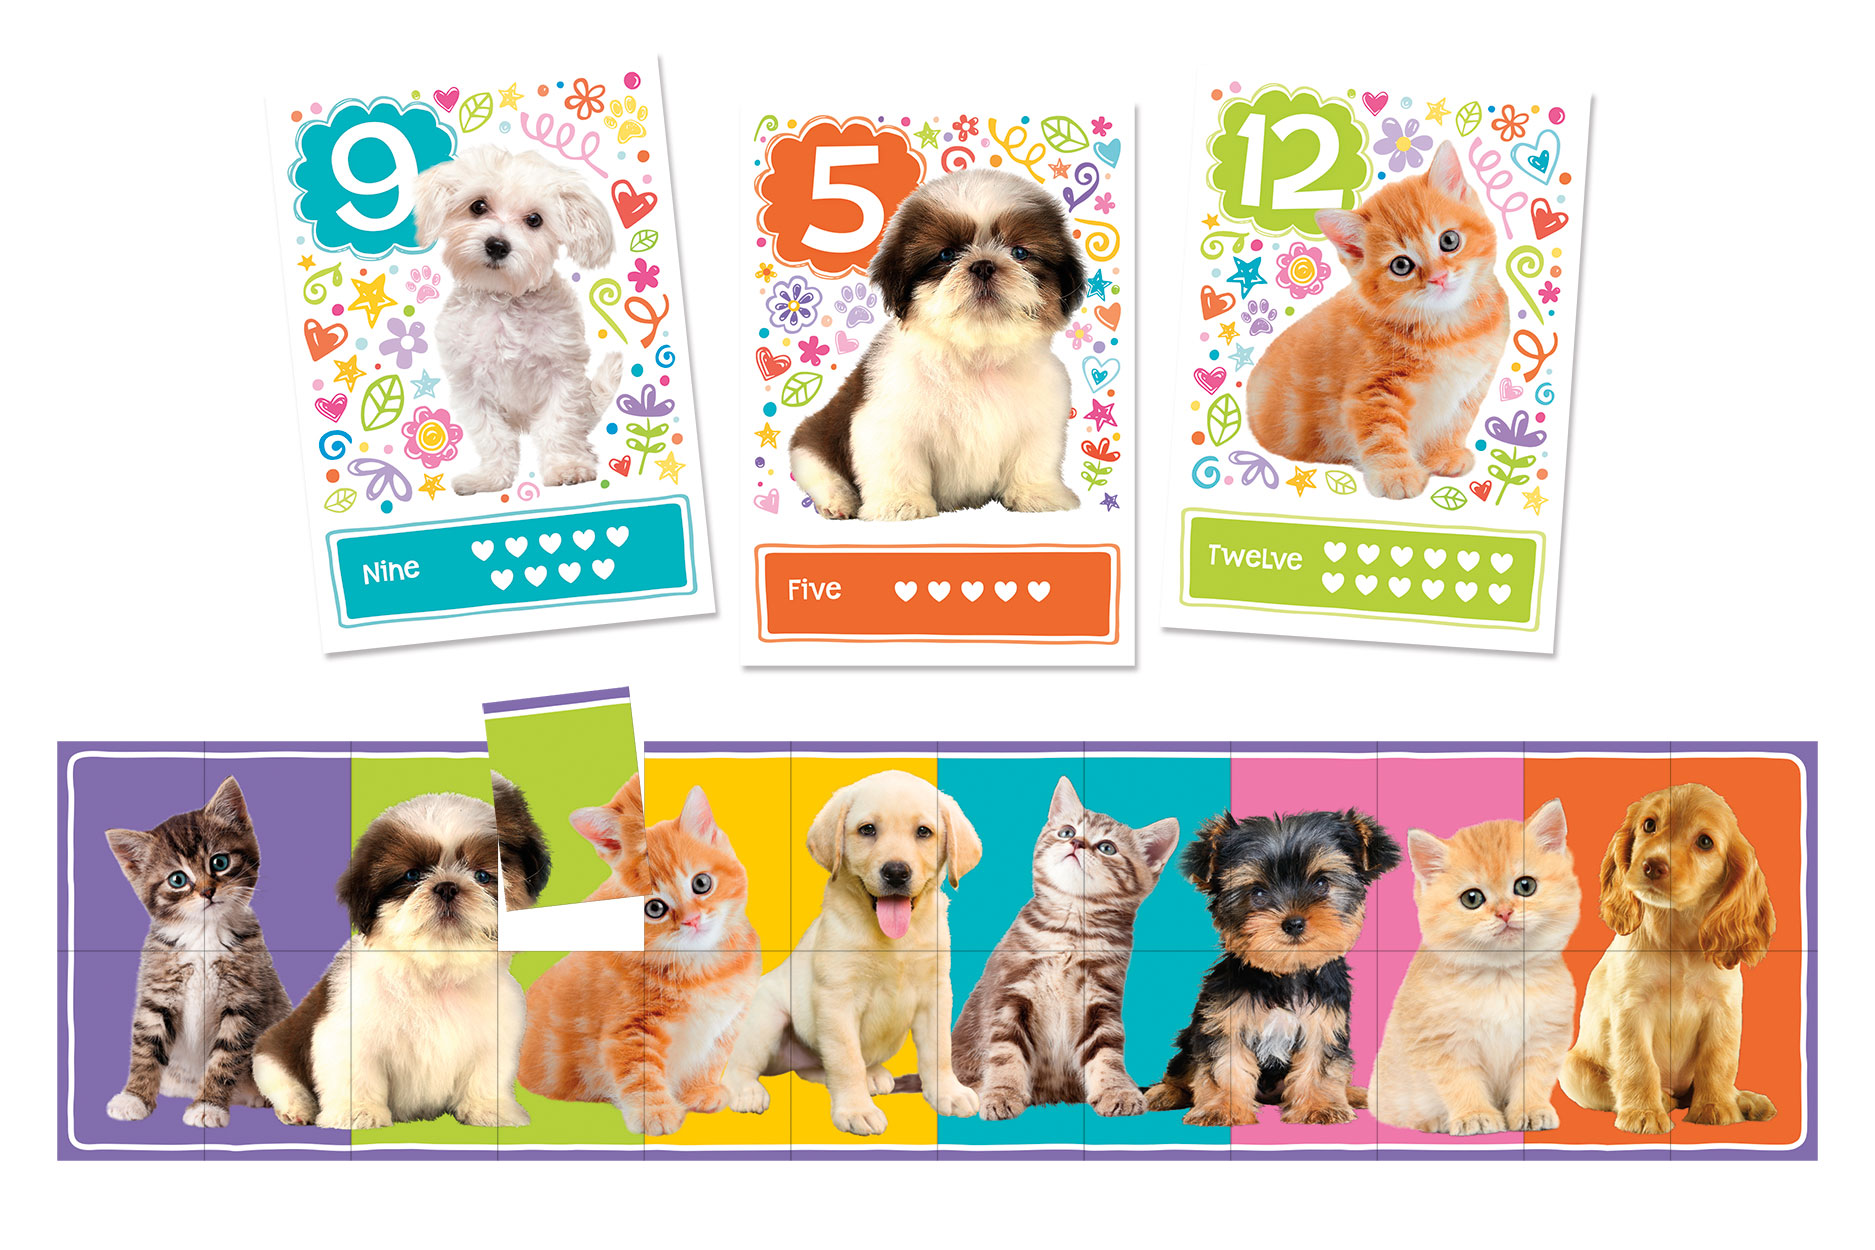 Match Up Game & Puzzle, Learn to count -- Puppies & Kitties by Peaceable Kingdom